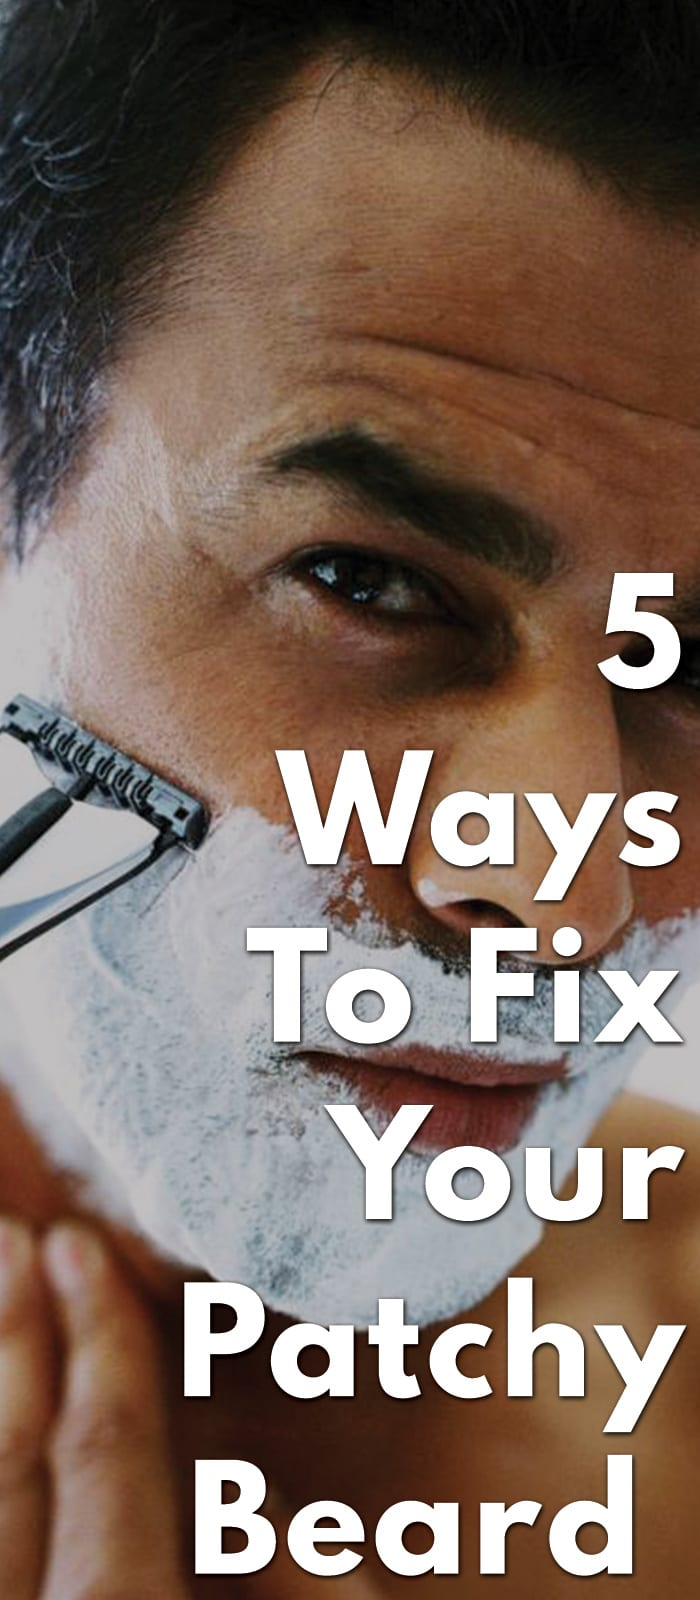 5-Ways-To-Fix-Your-Patchy-Beard-.